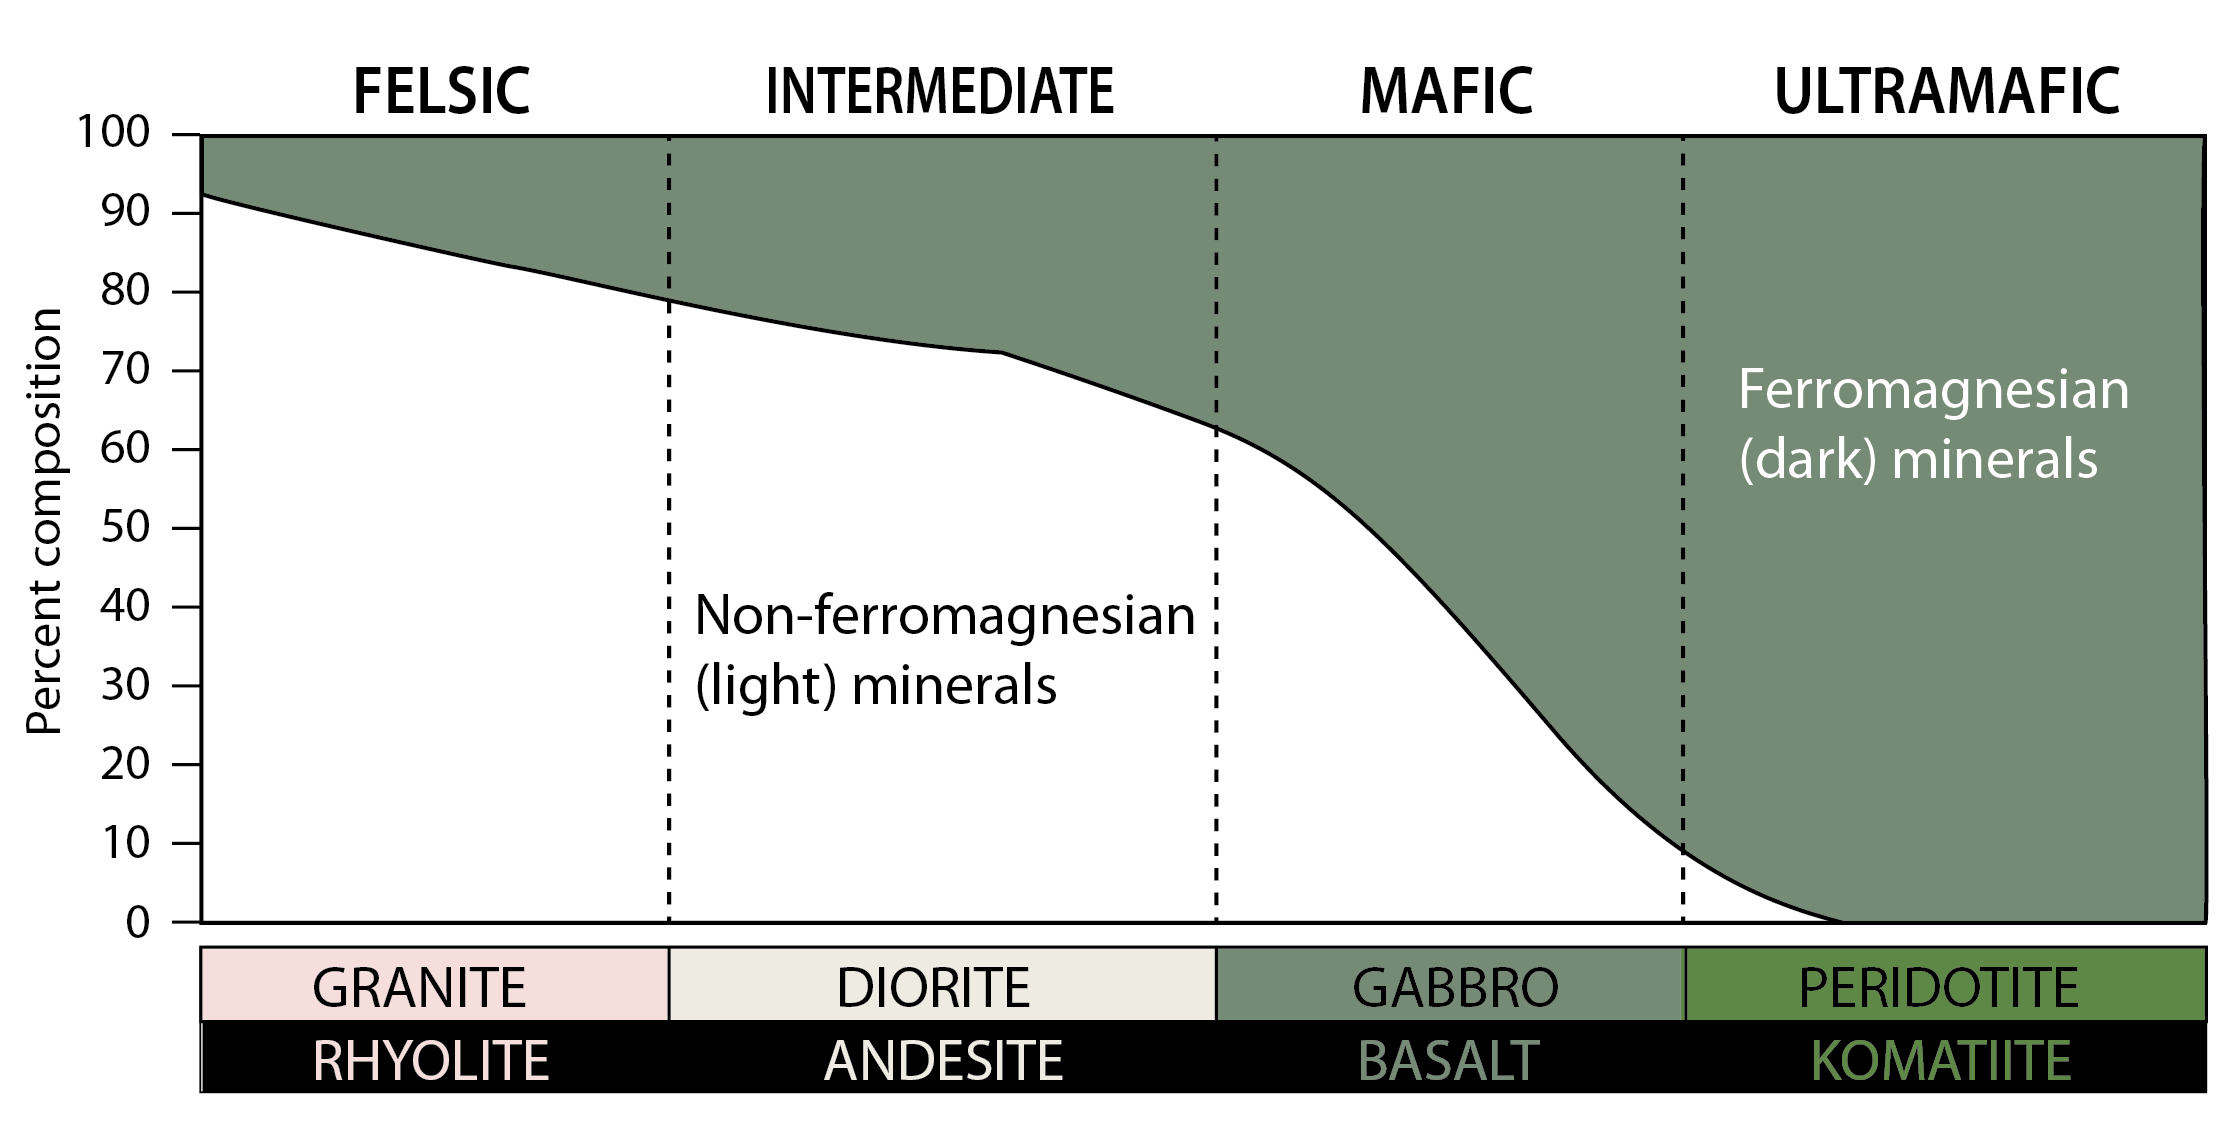 Simplified igneous rock classification according to the proportion of dark (ferromagnesian) minerals. [KP]